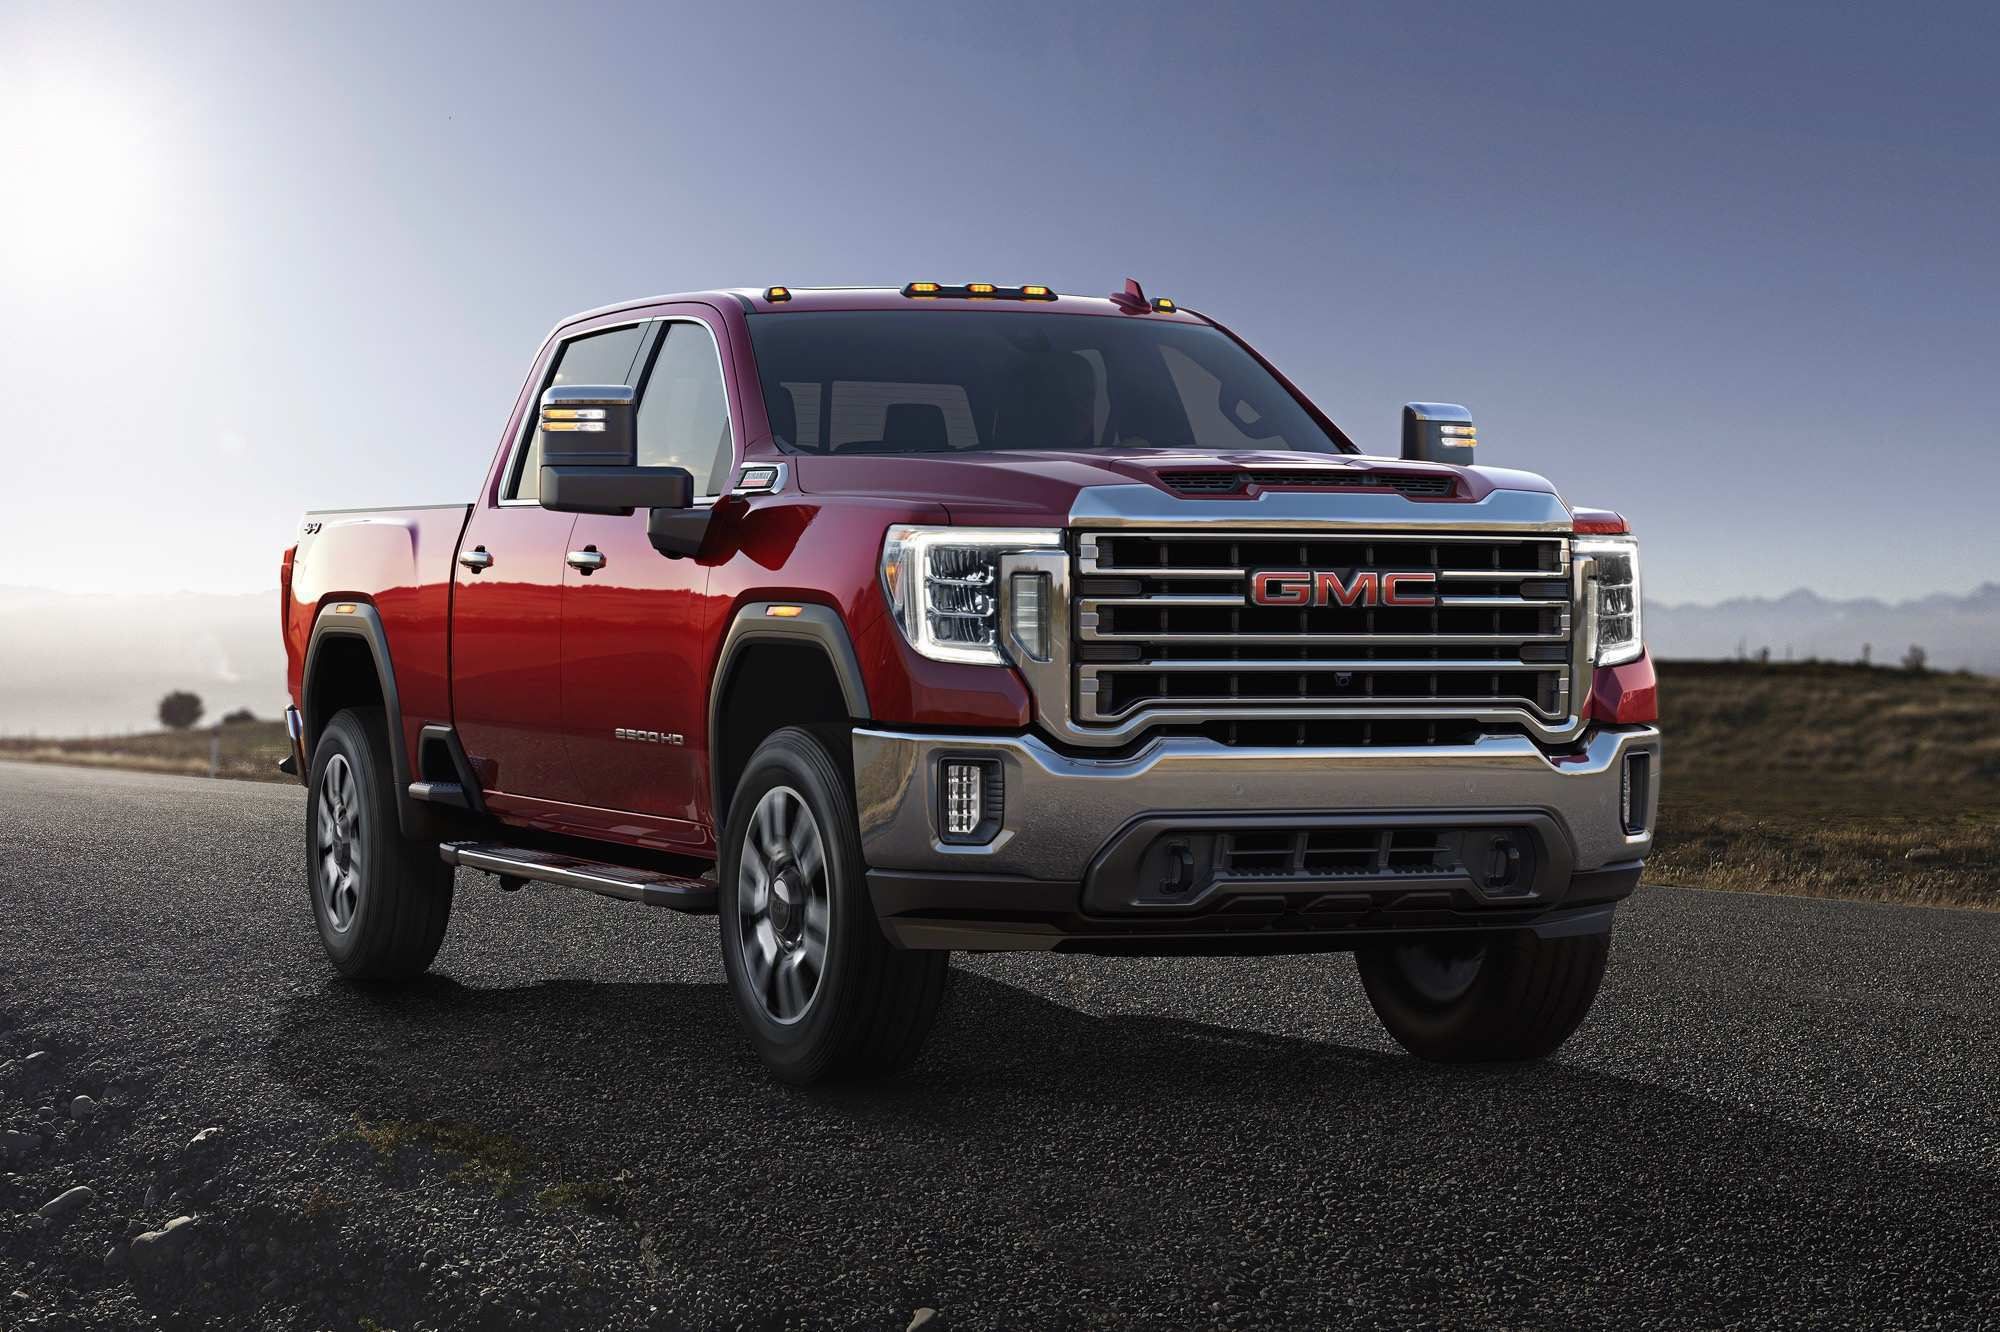 30 New 2020 Gmc Pickup Truck History with 2020 Gmc Pickup Truck